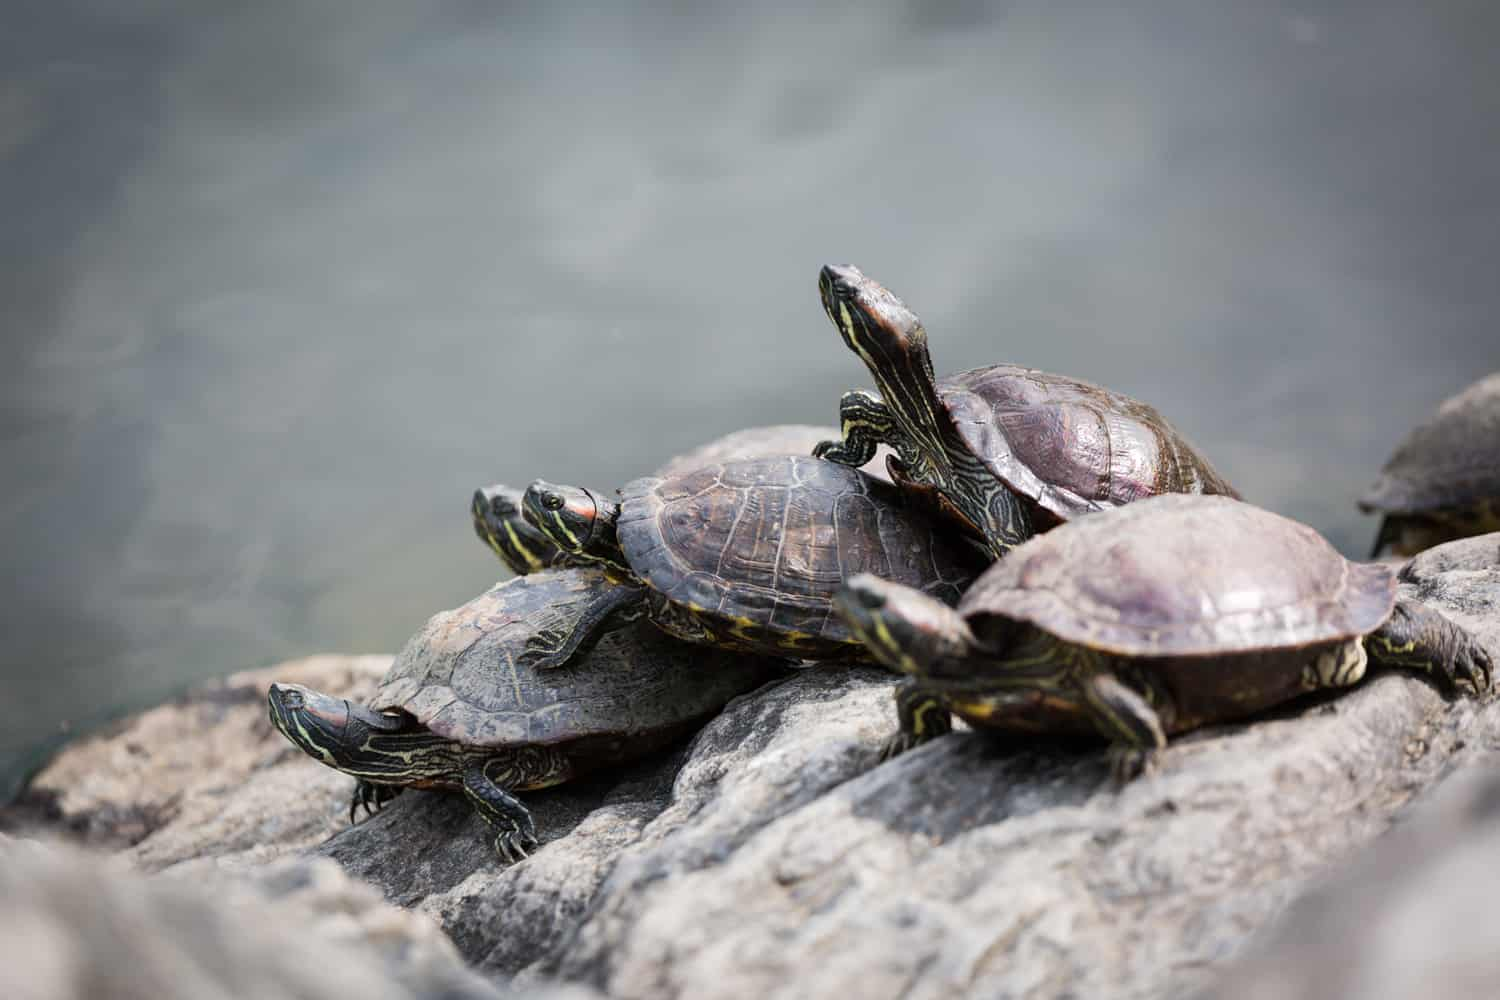 Four turtles sunning on a rock